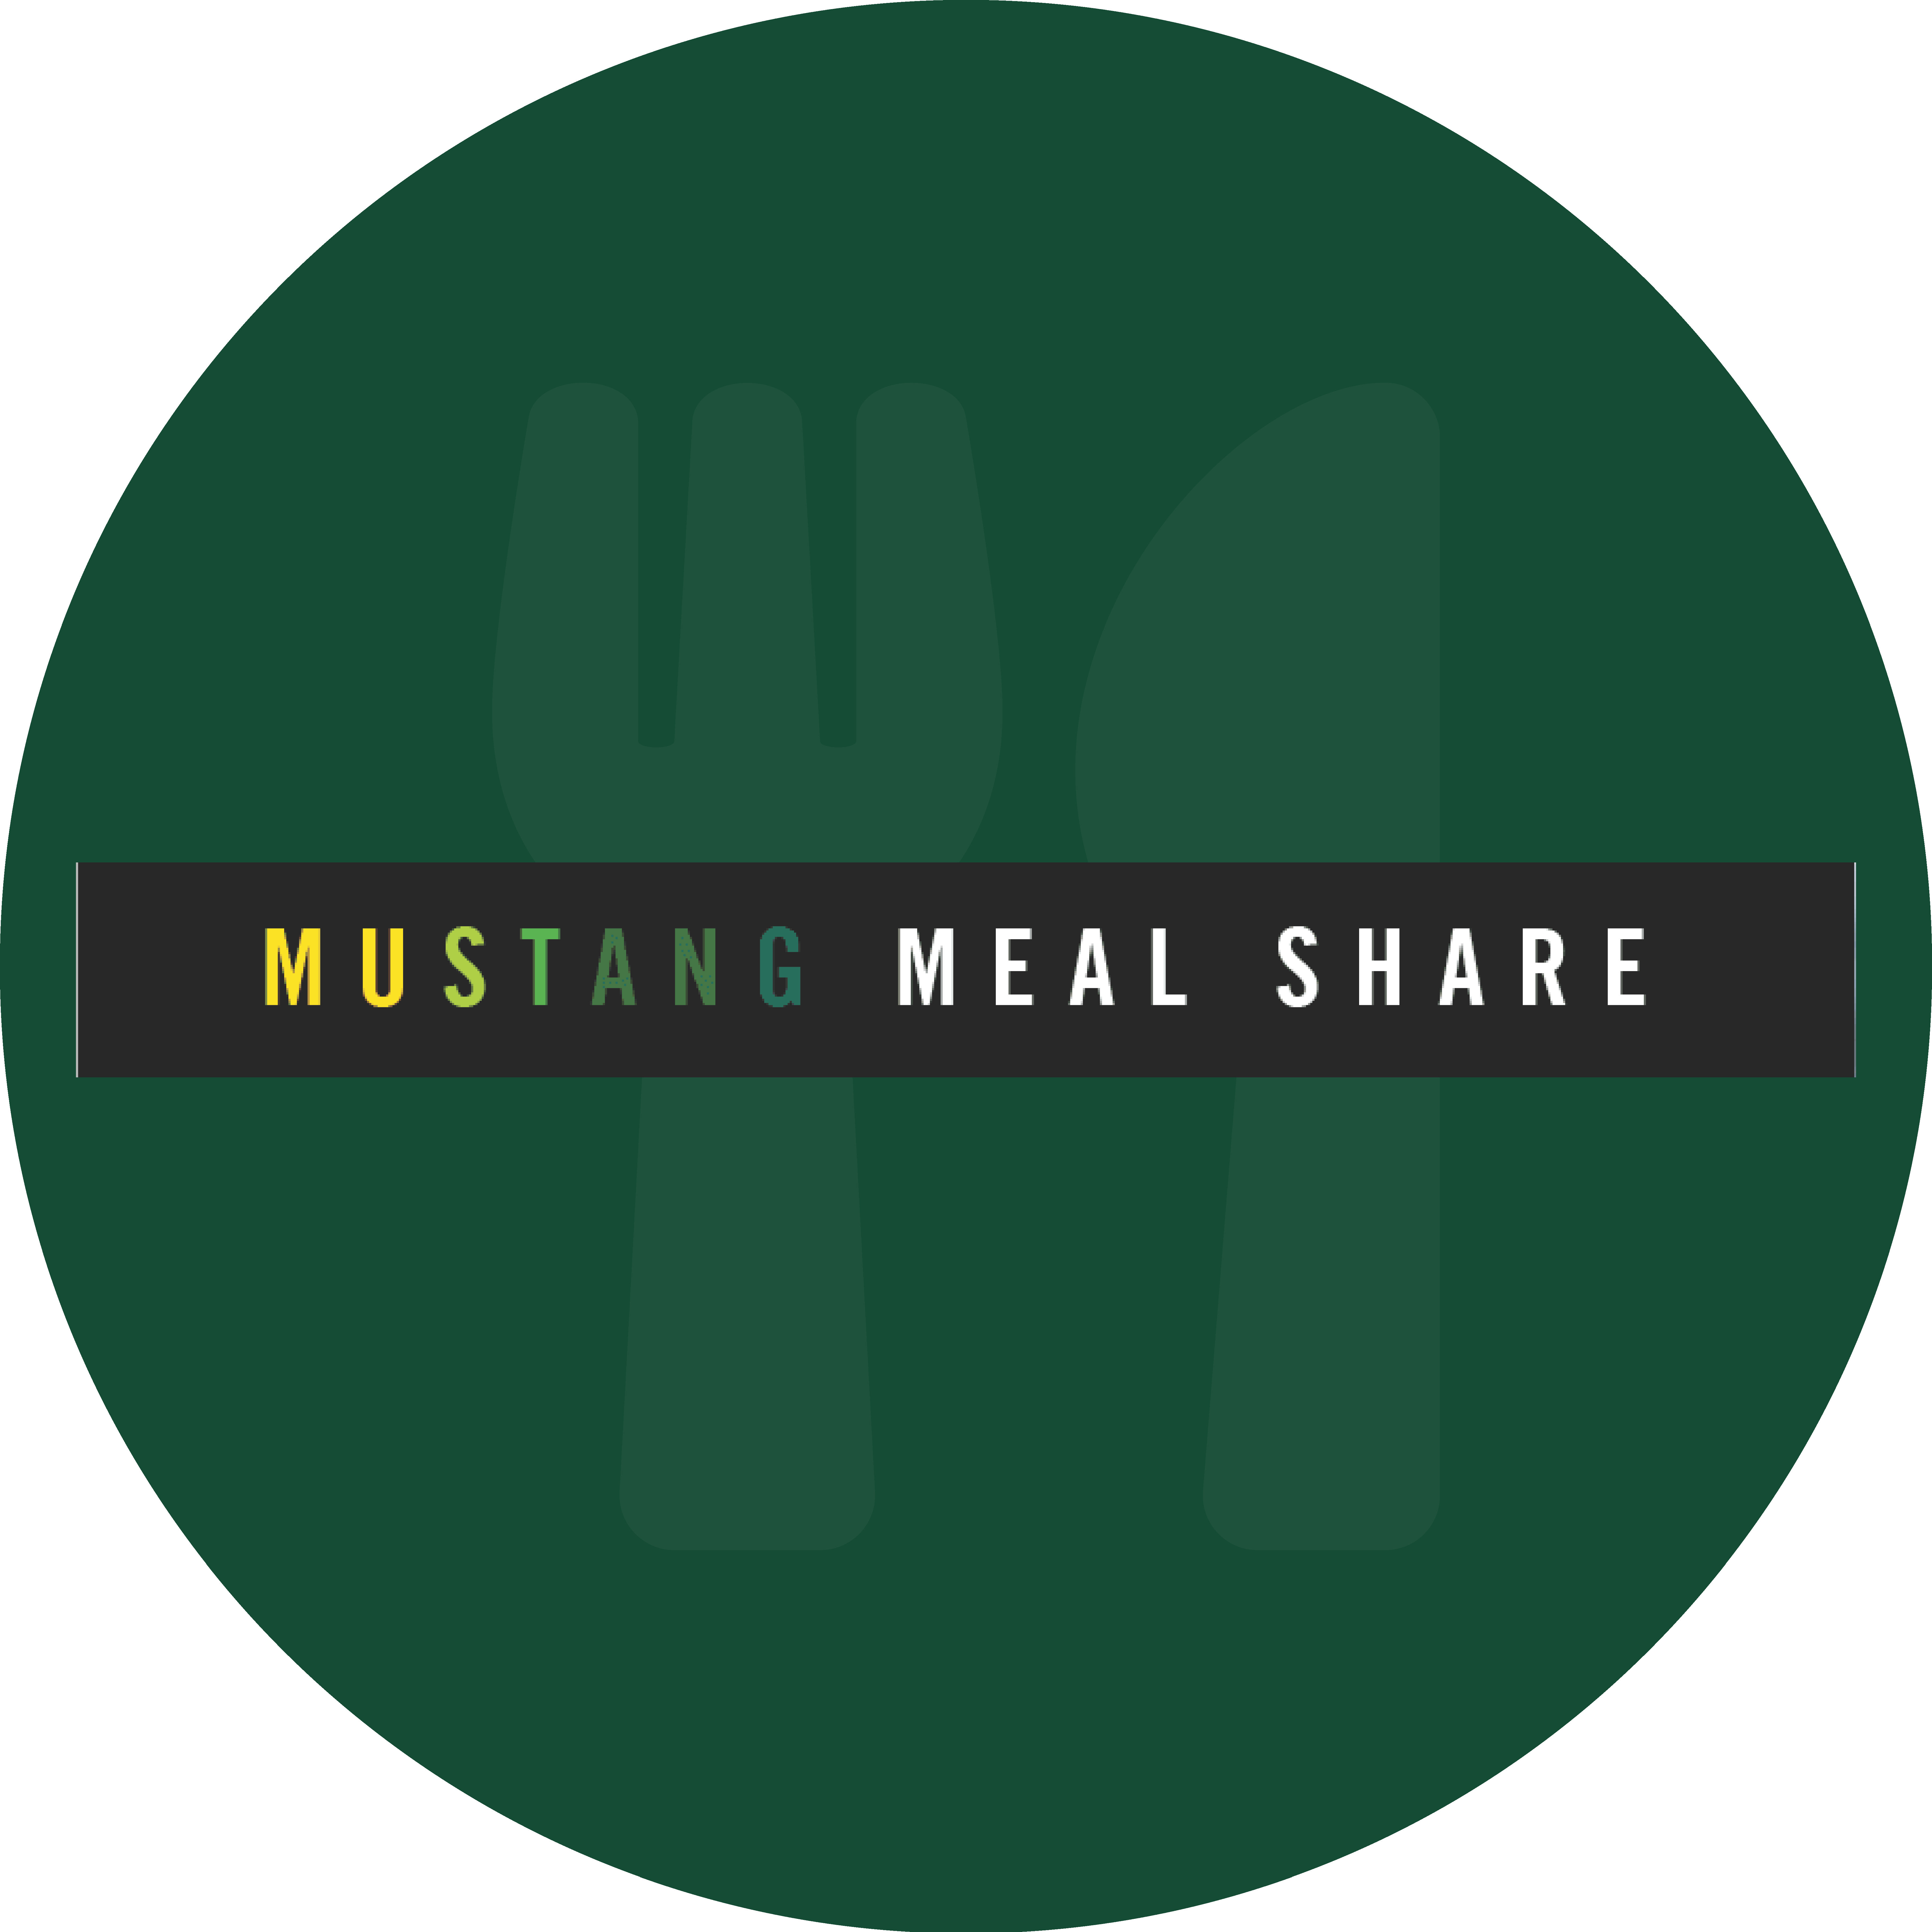 Mustang Meal Share